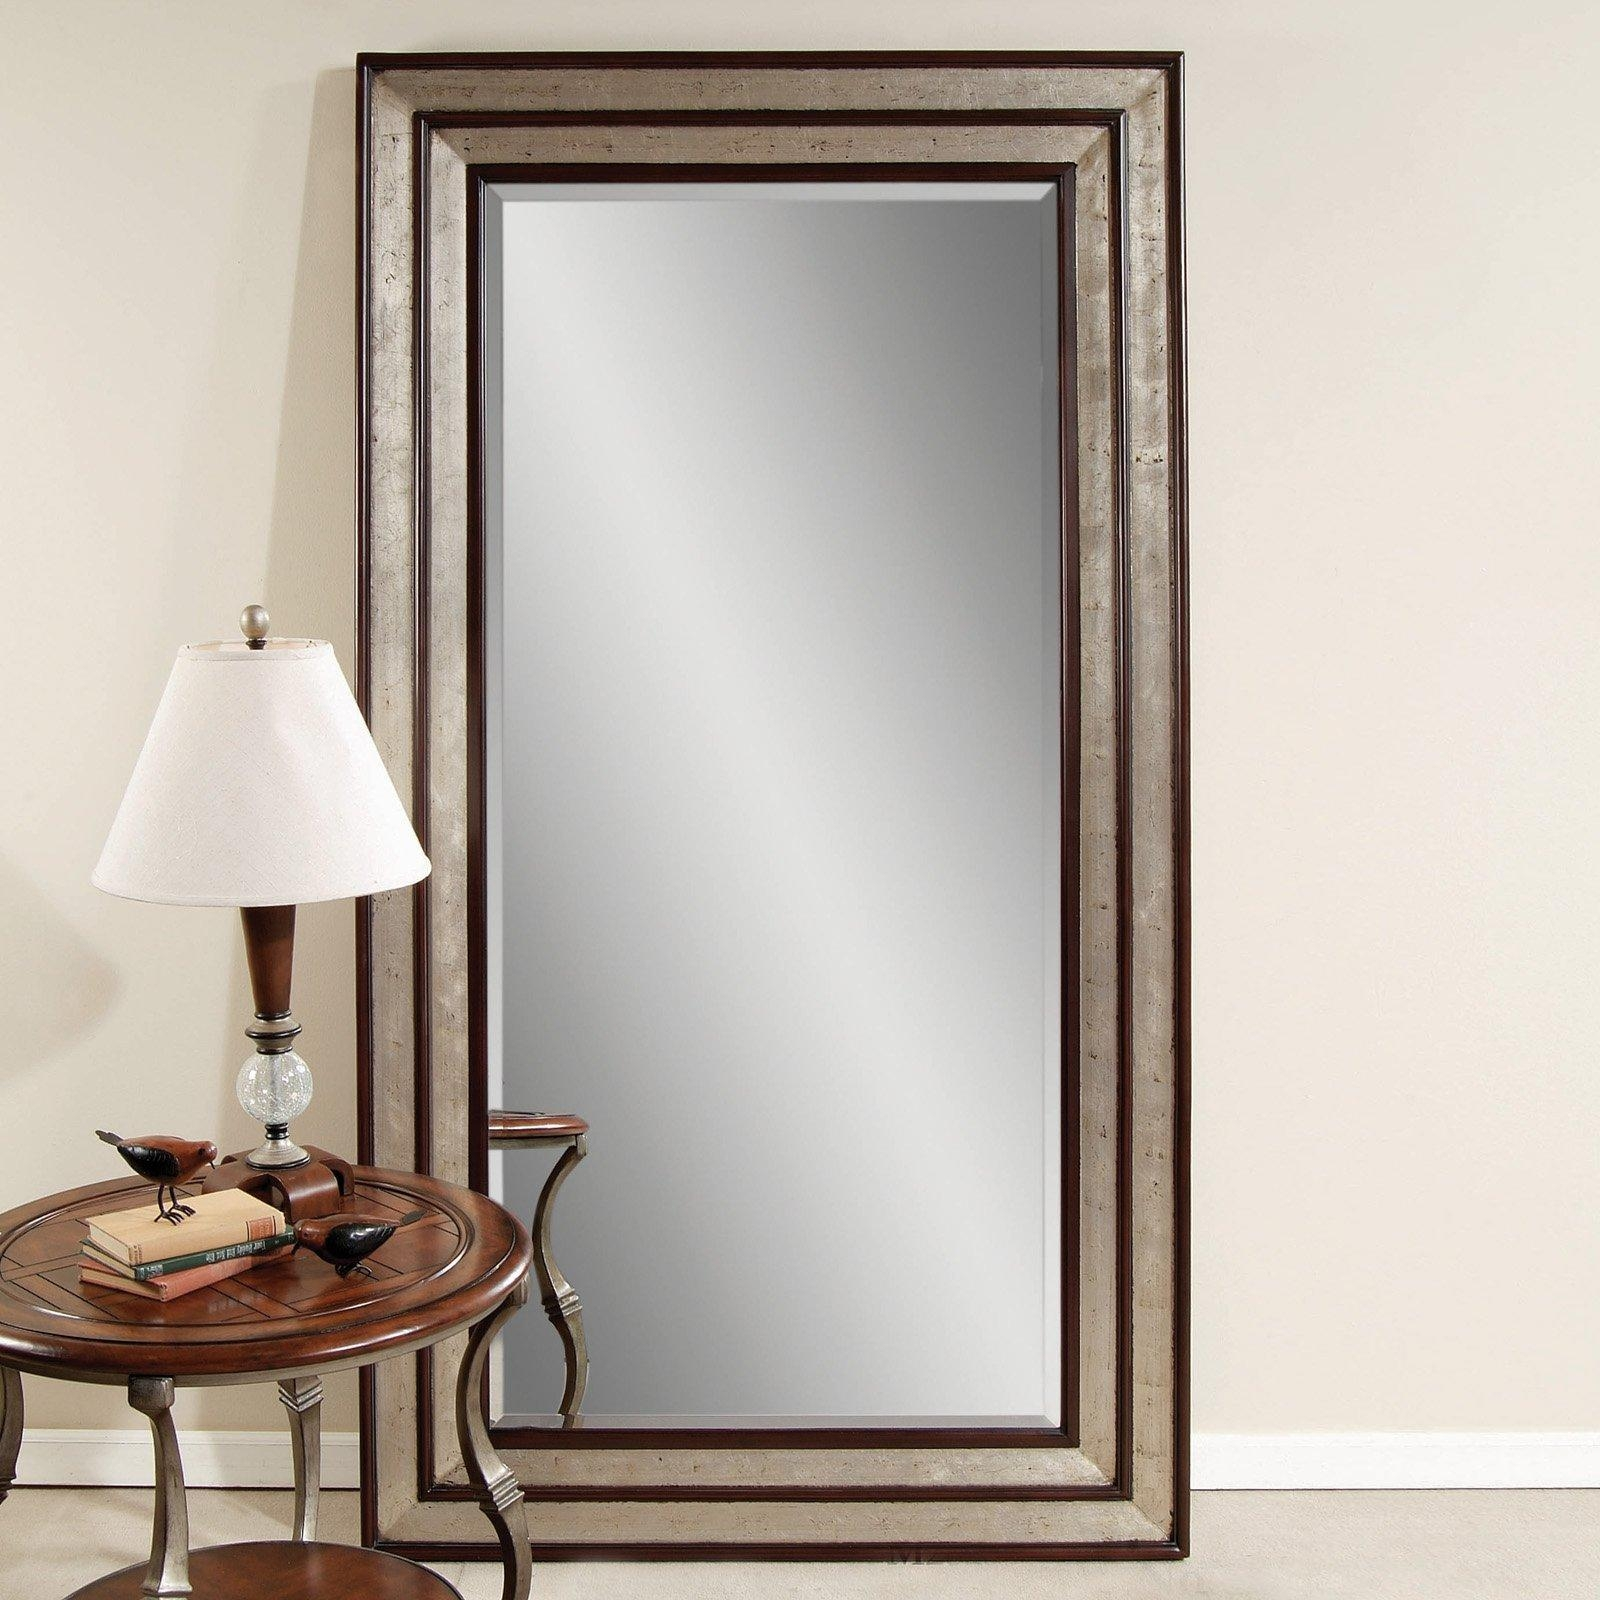 Furniture: Mesmerizing Oversized Floor Mirror For Home Furniture In Cream Standing Mirror (Image 14 of 20)